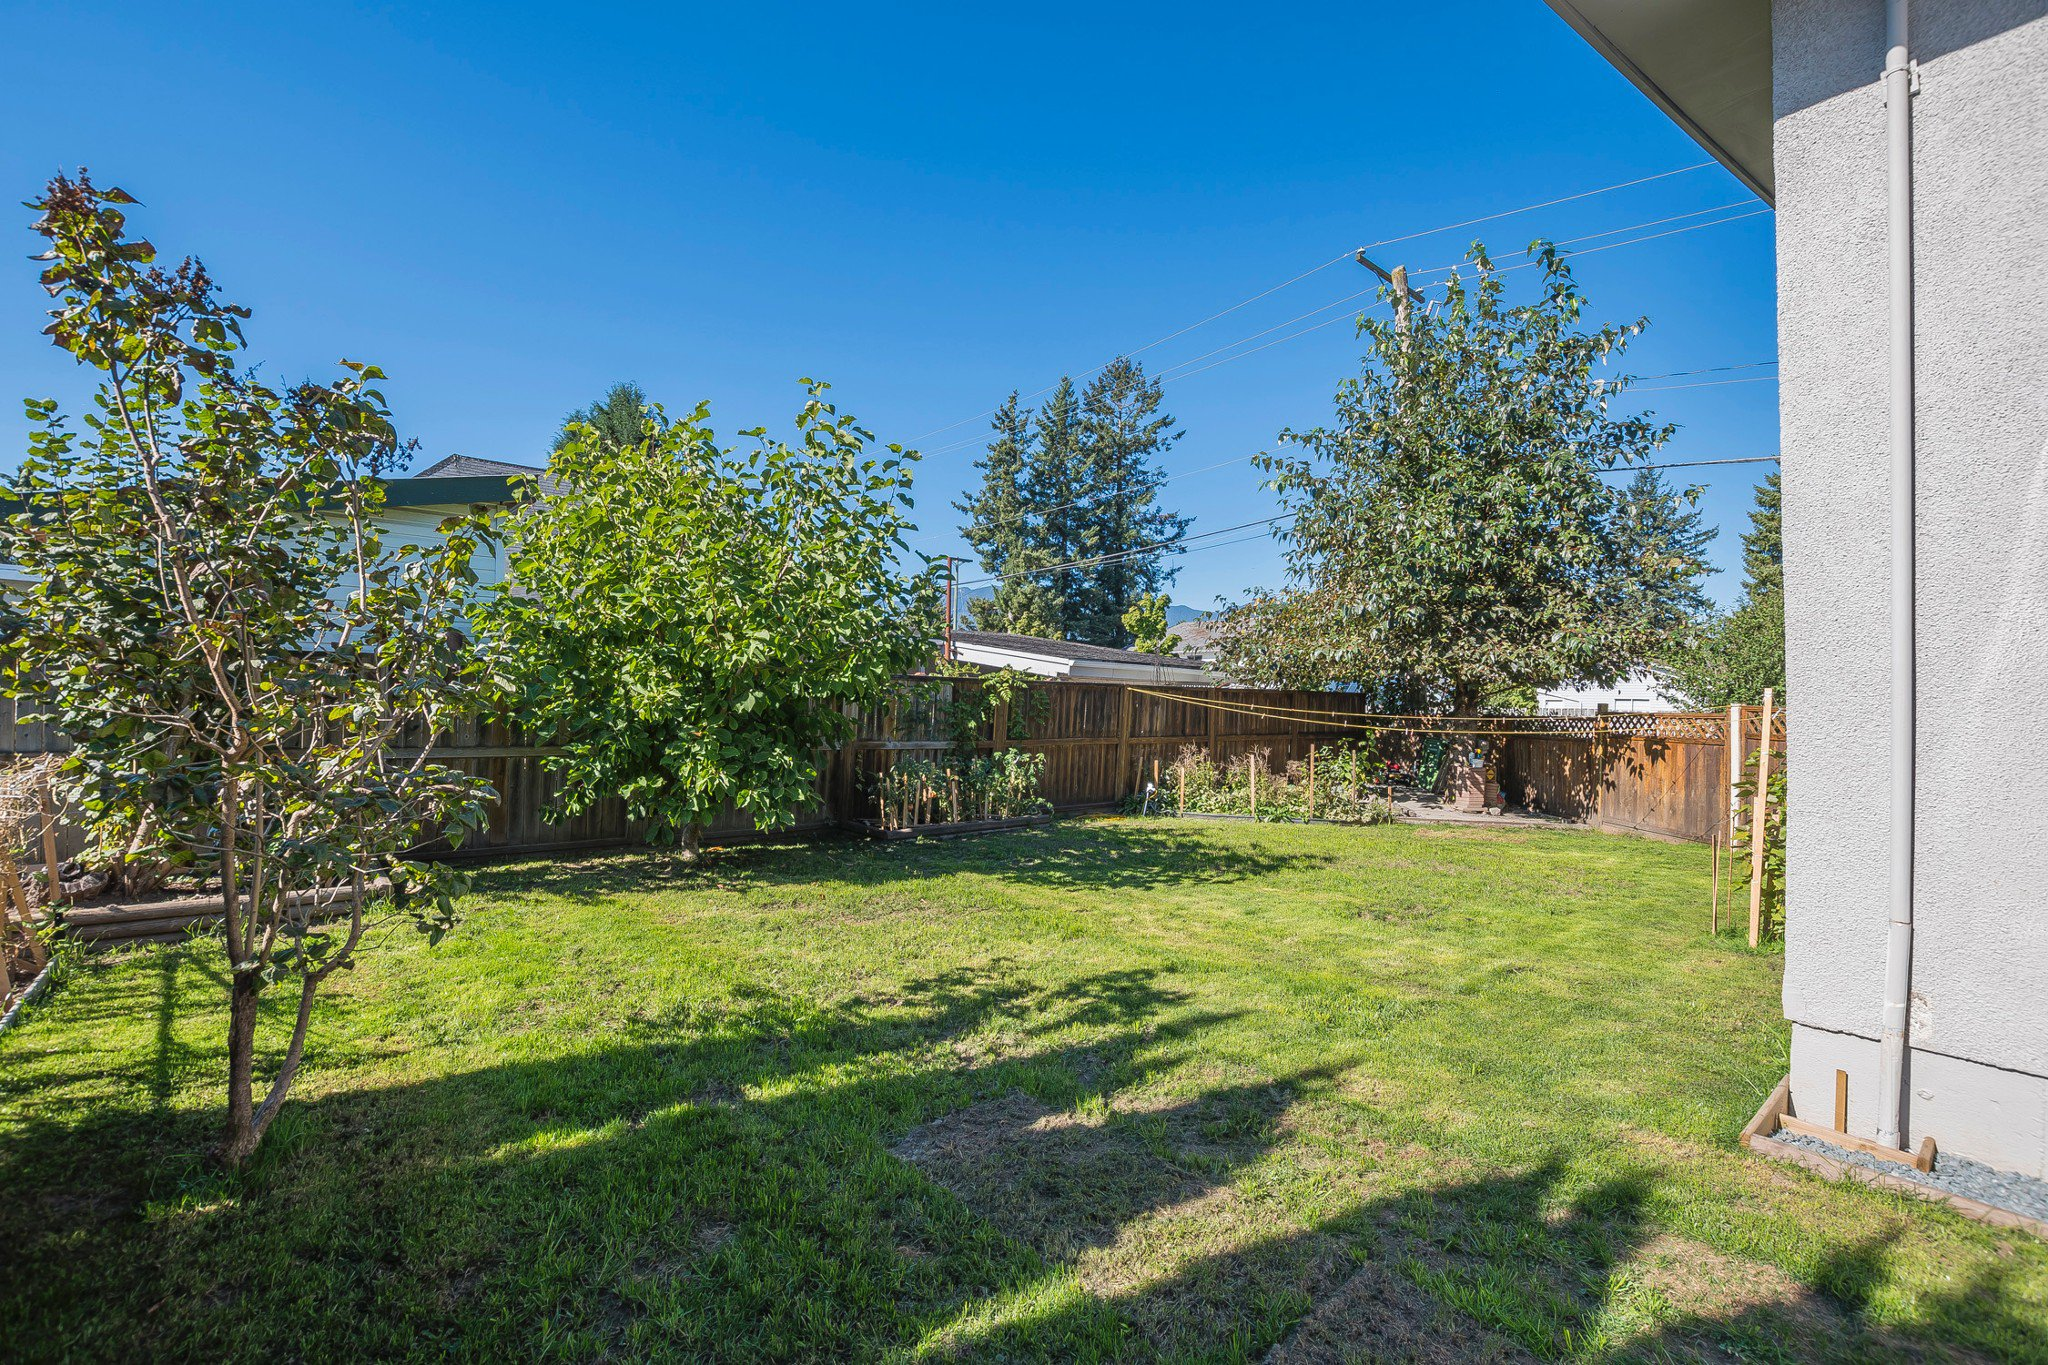 Photo 22: Photos: 46240 Reece: Chilliwack House for sale : MLS®# R2211935